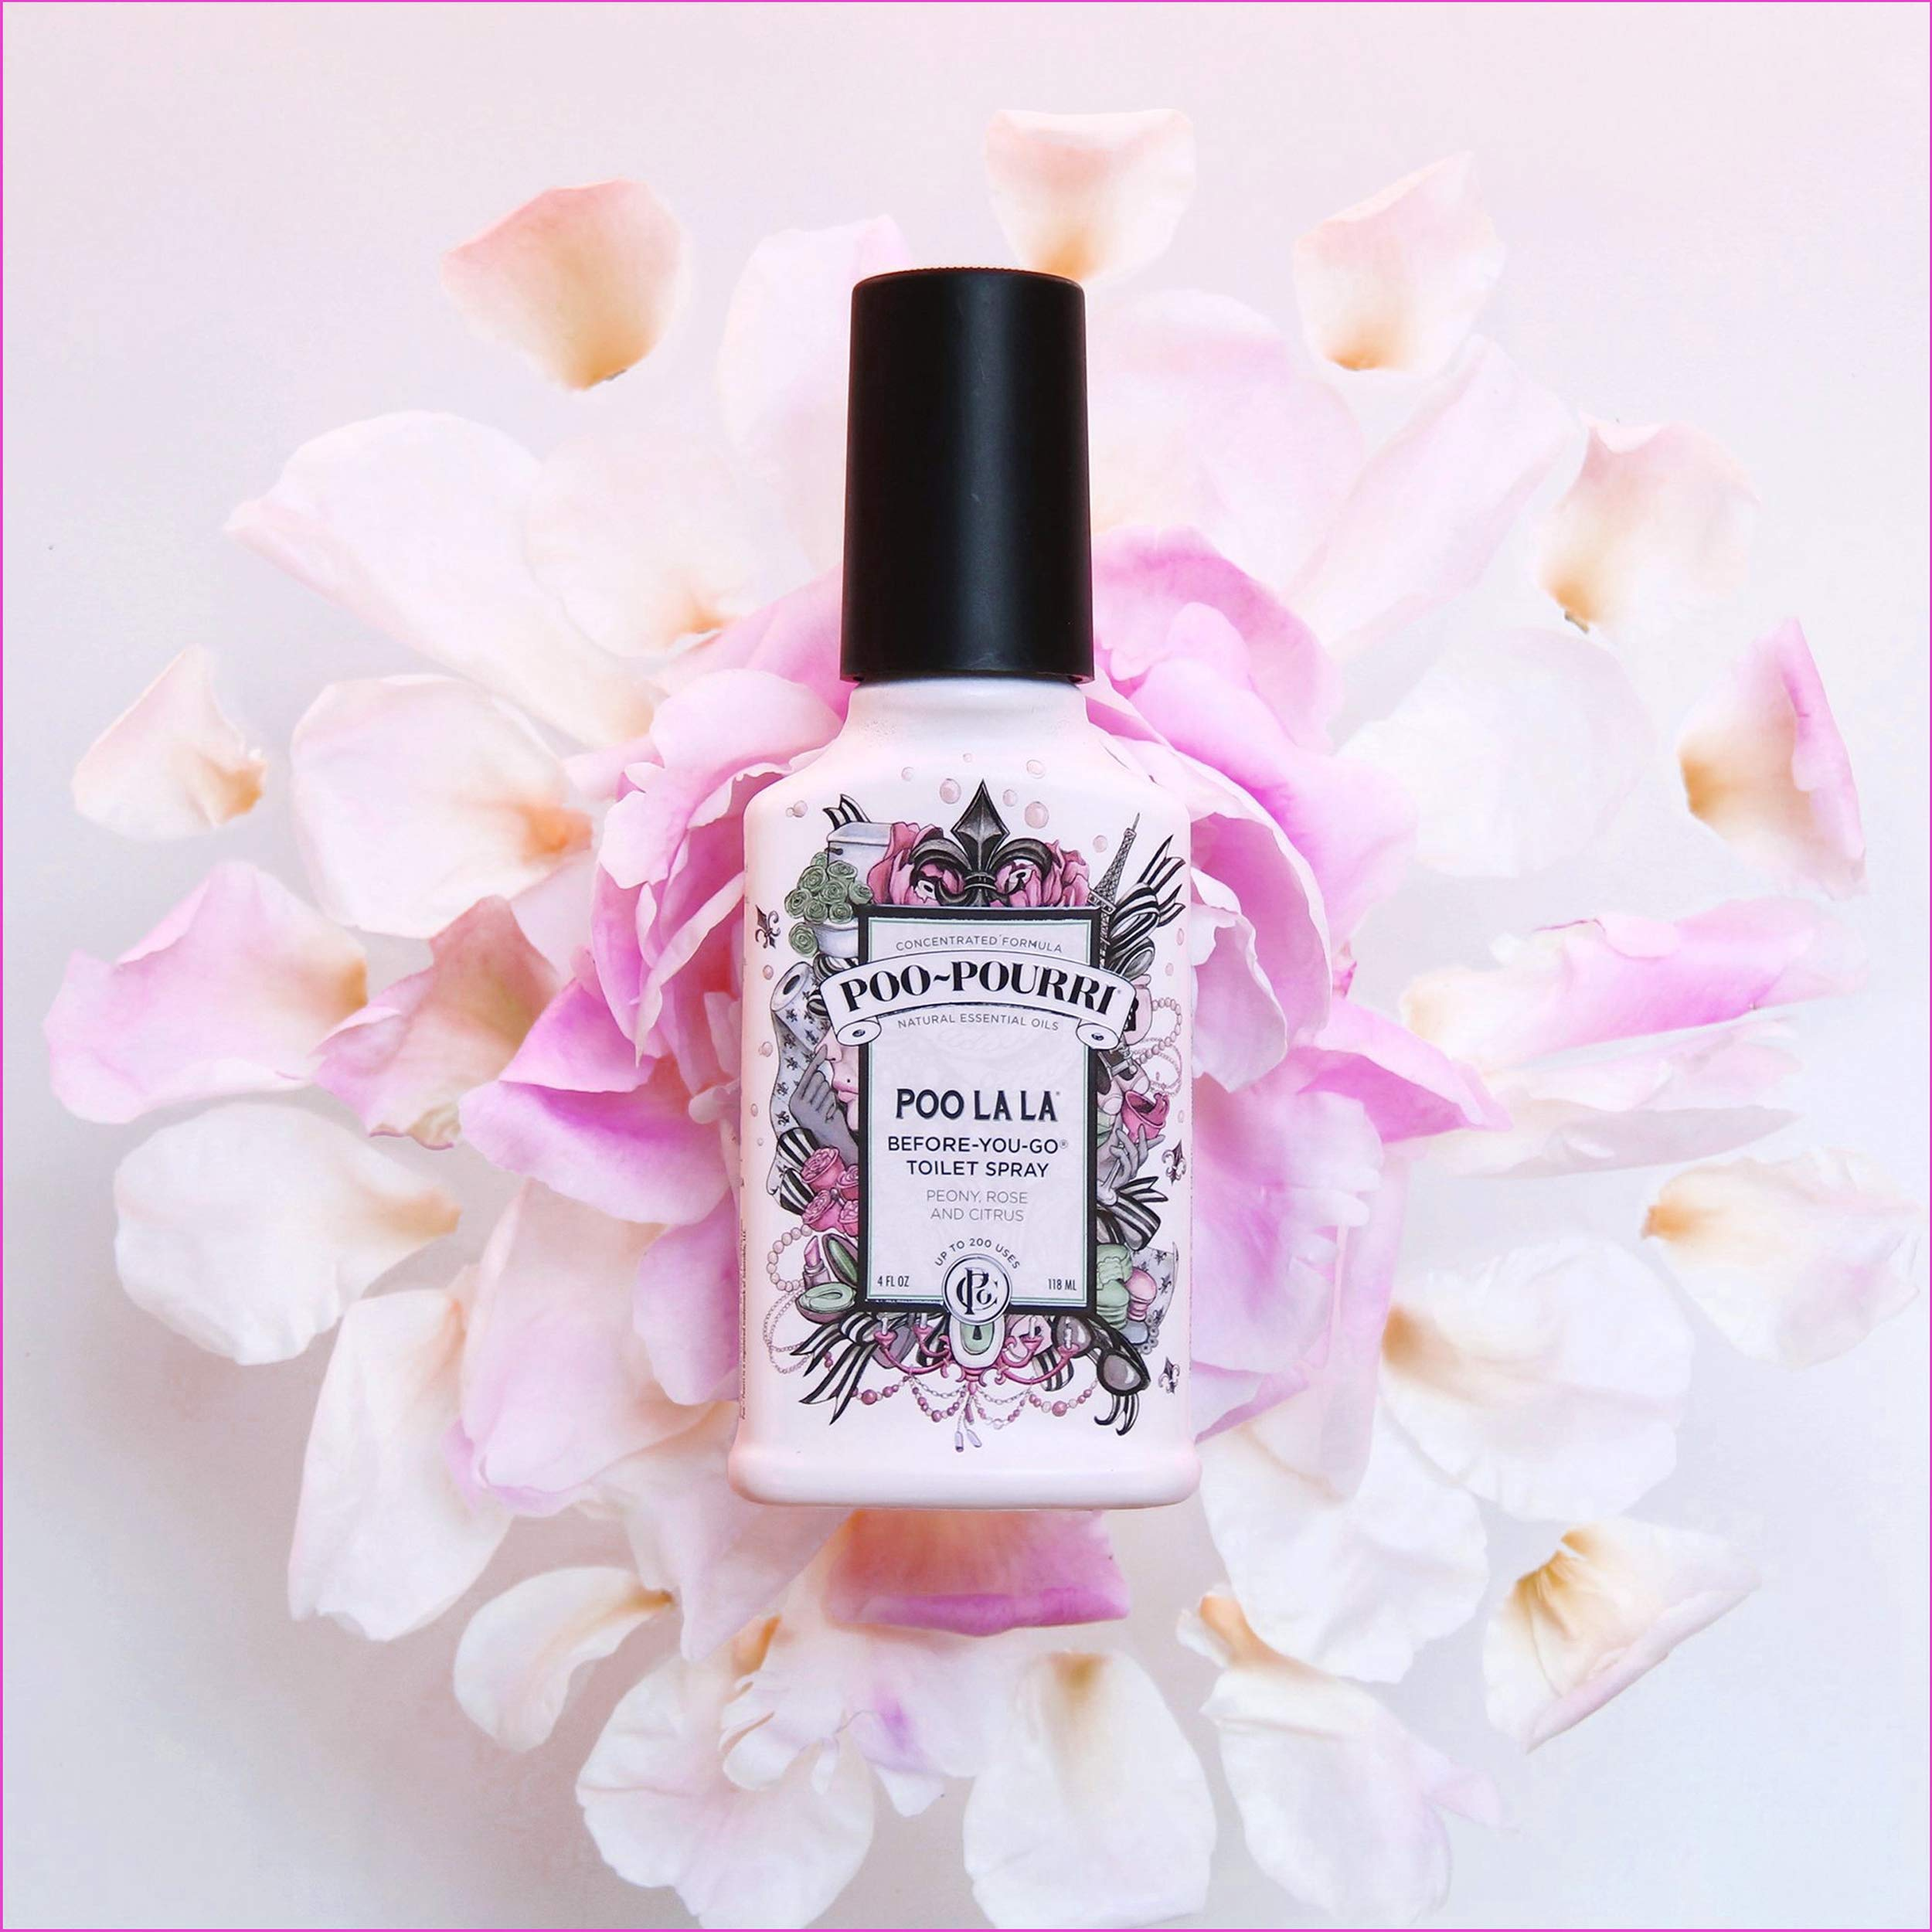 Poo-Pourri Poo La La Before-You-Go-Toilet Spray - 2-Ounce, 2 Pack by Poo-Pourri (Image #3)